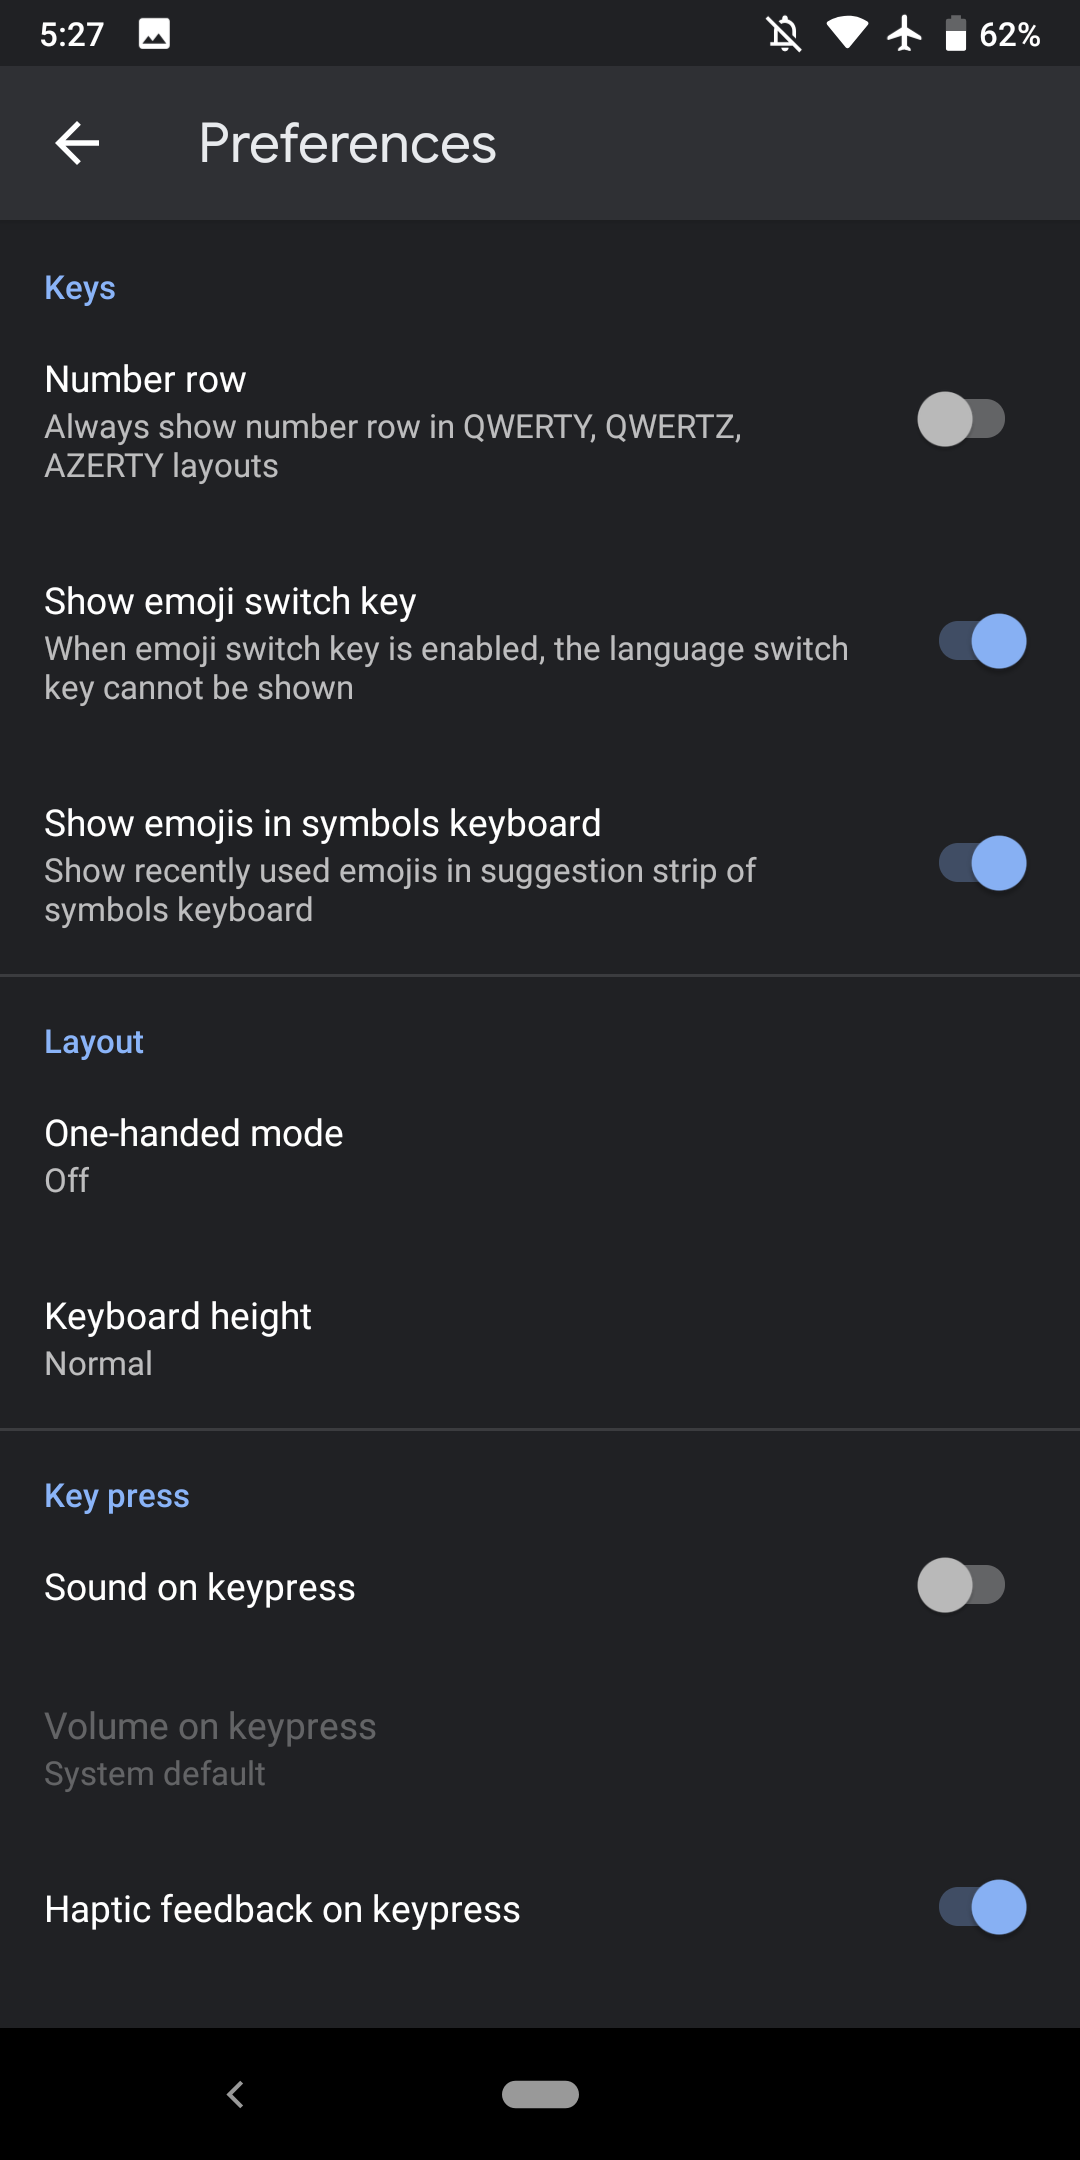 Gboard 8 5 preps Assistant integration, adds dark theme for settings